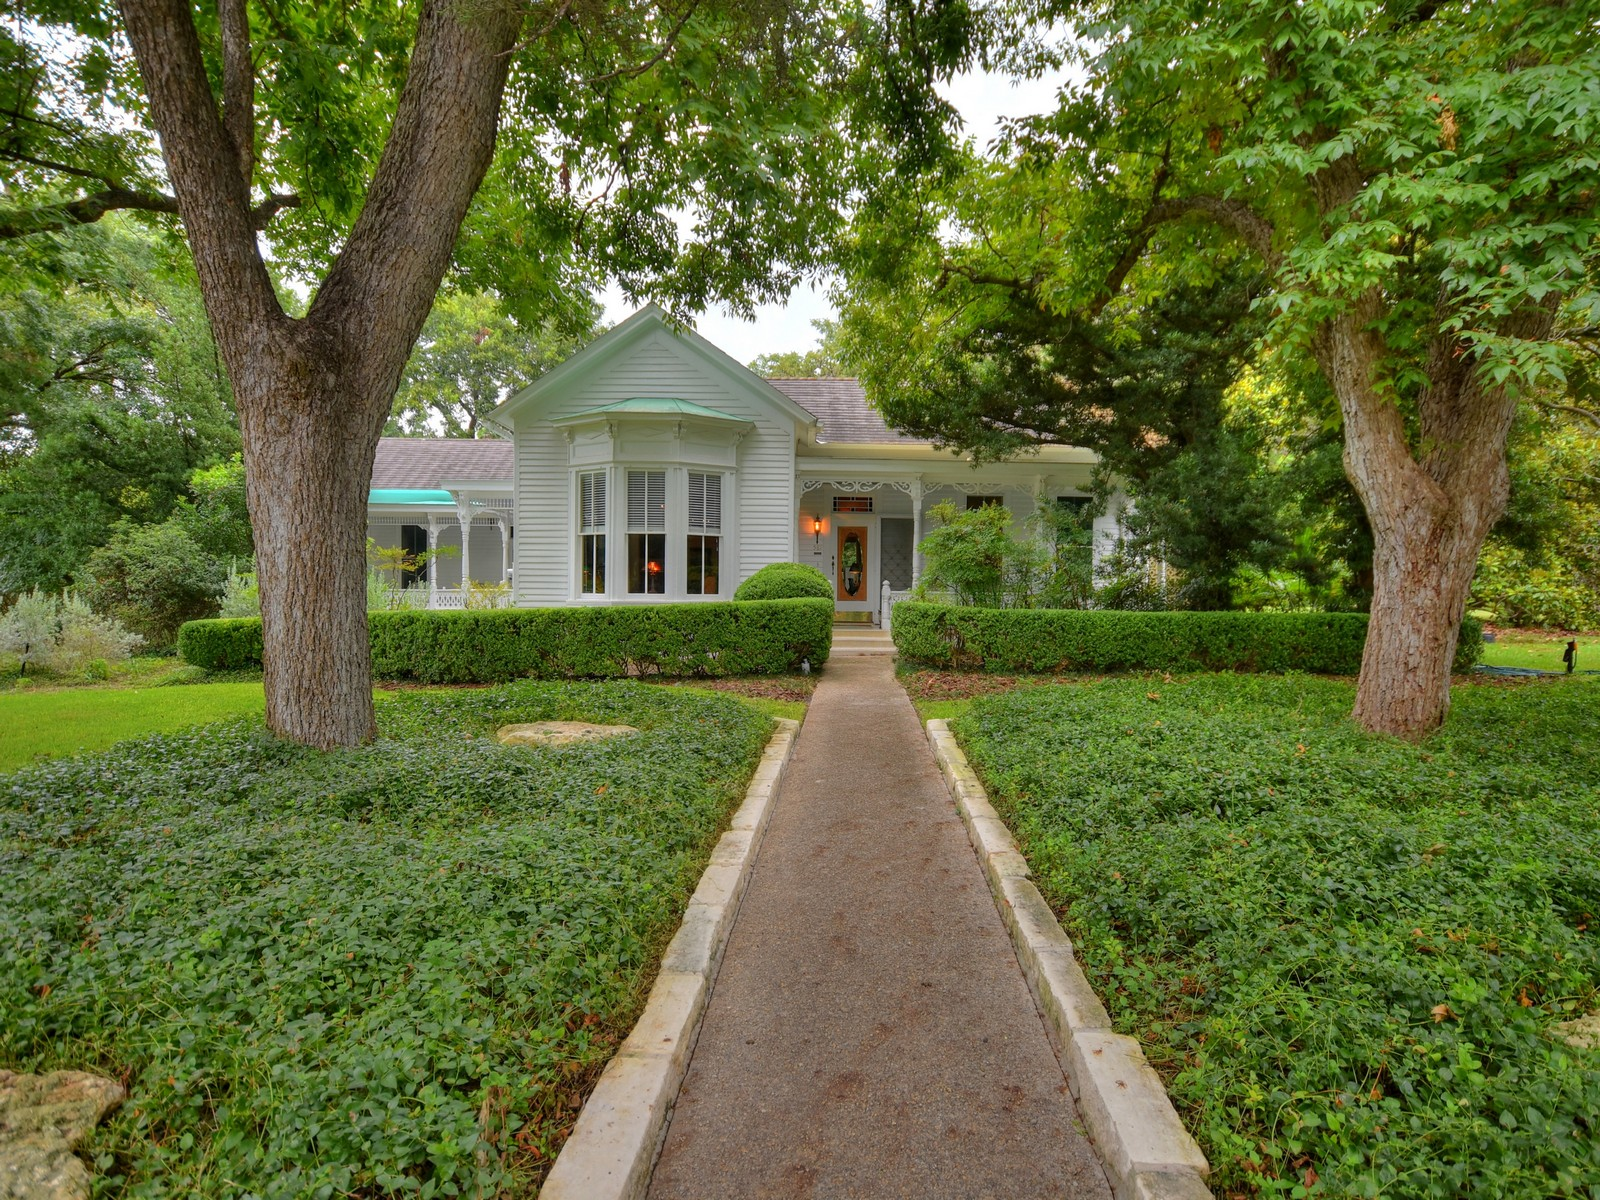 Single Family Home for Sale at Historic Jewel Built in 1863 581 W Coll New Braunfels, Texas 78130 United States